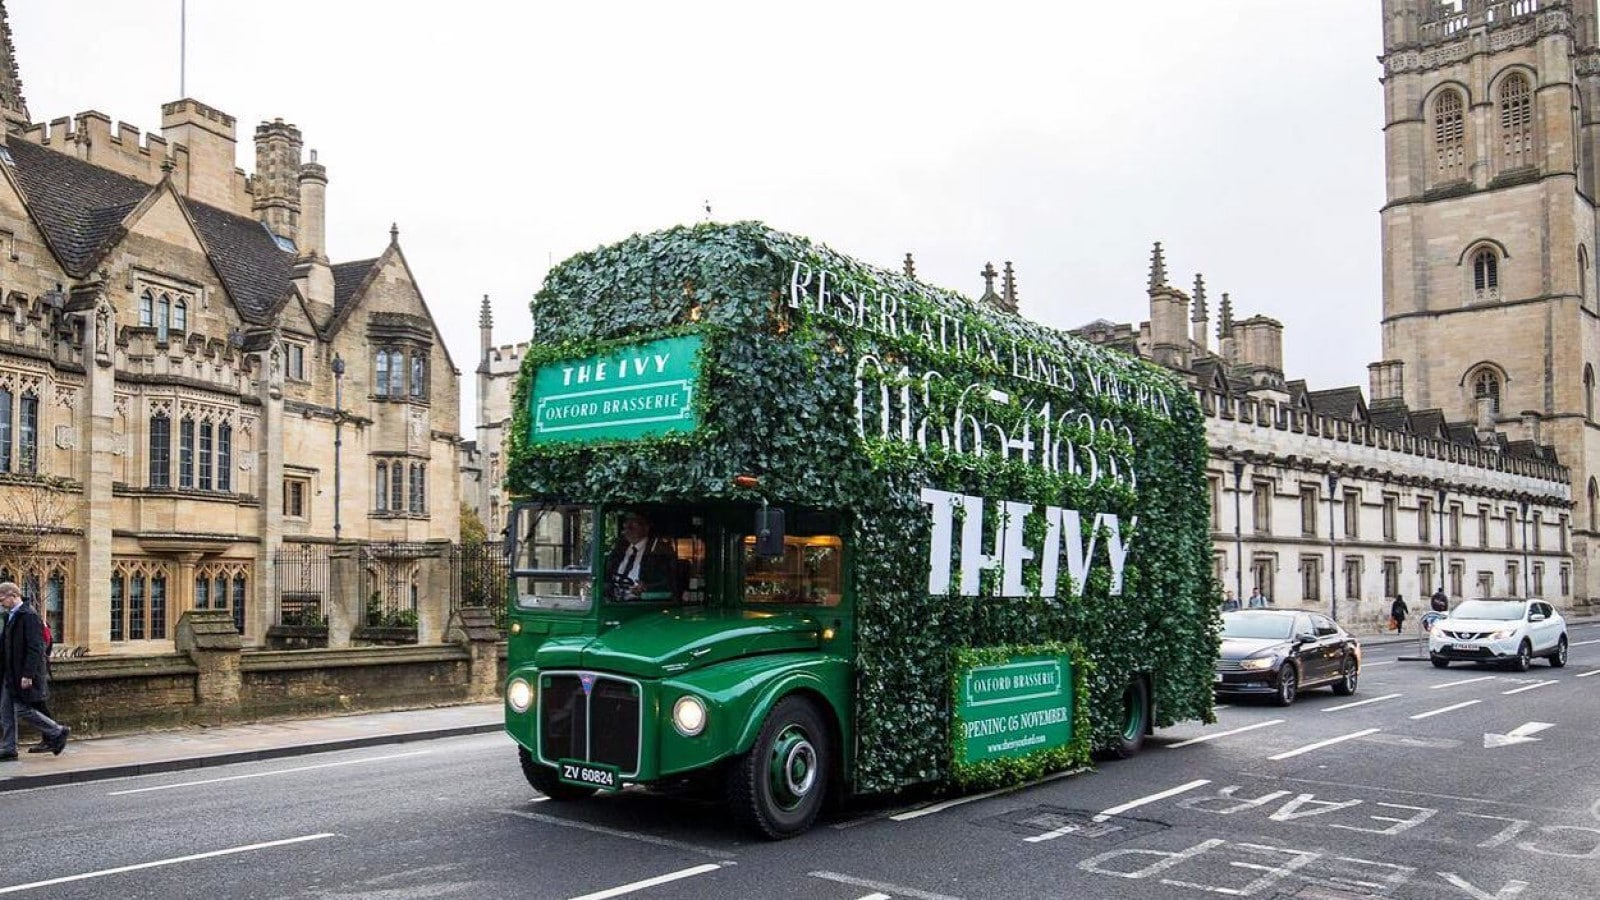 The Ivy Oxford Brasserie is opening on Tuesday 05 November